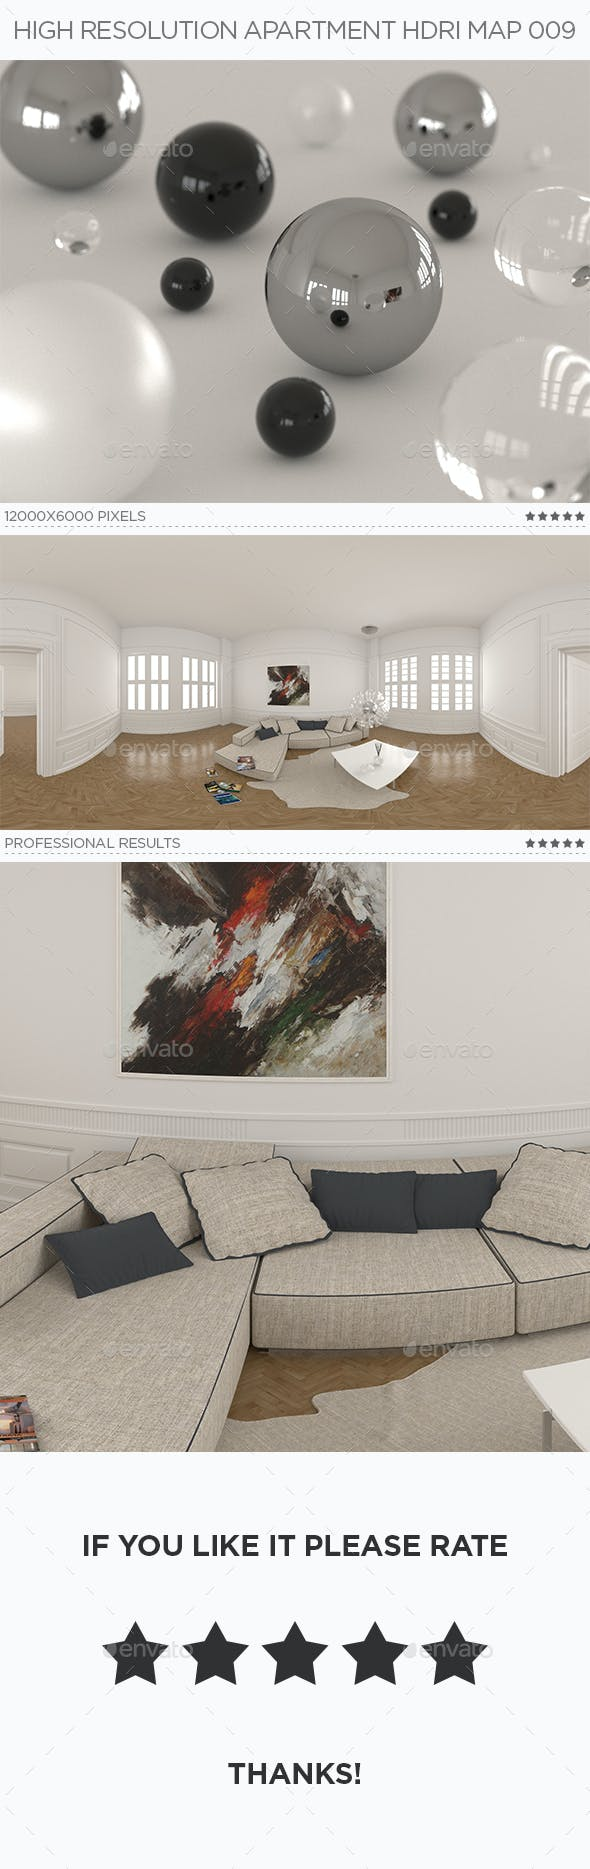 High Resolution Apartment HDRi Map 009 - 3DOcean Item for Sale